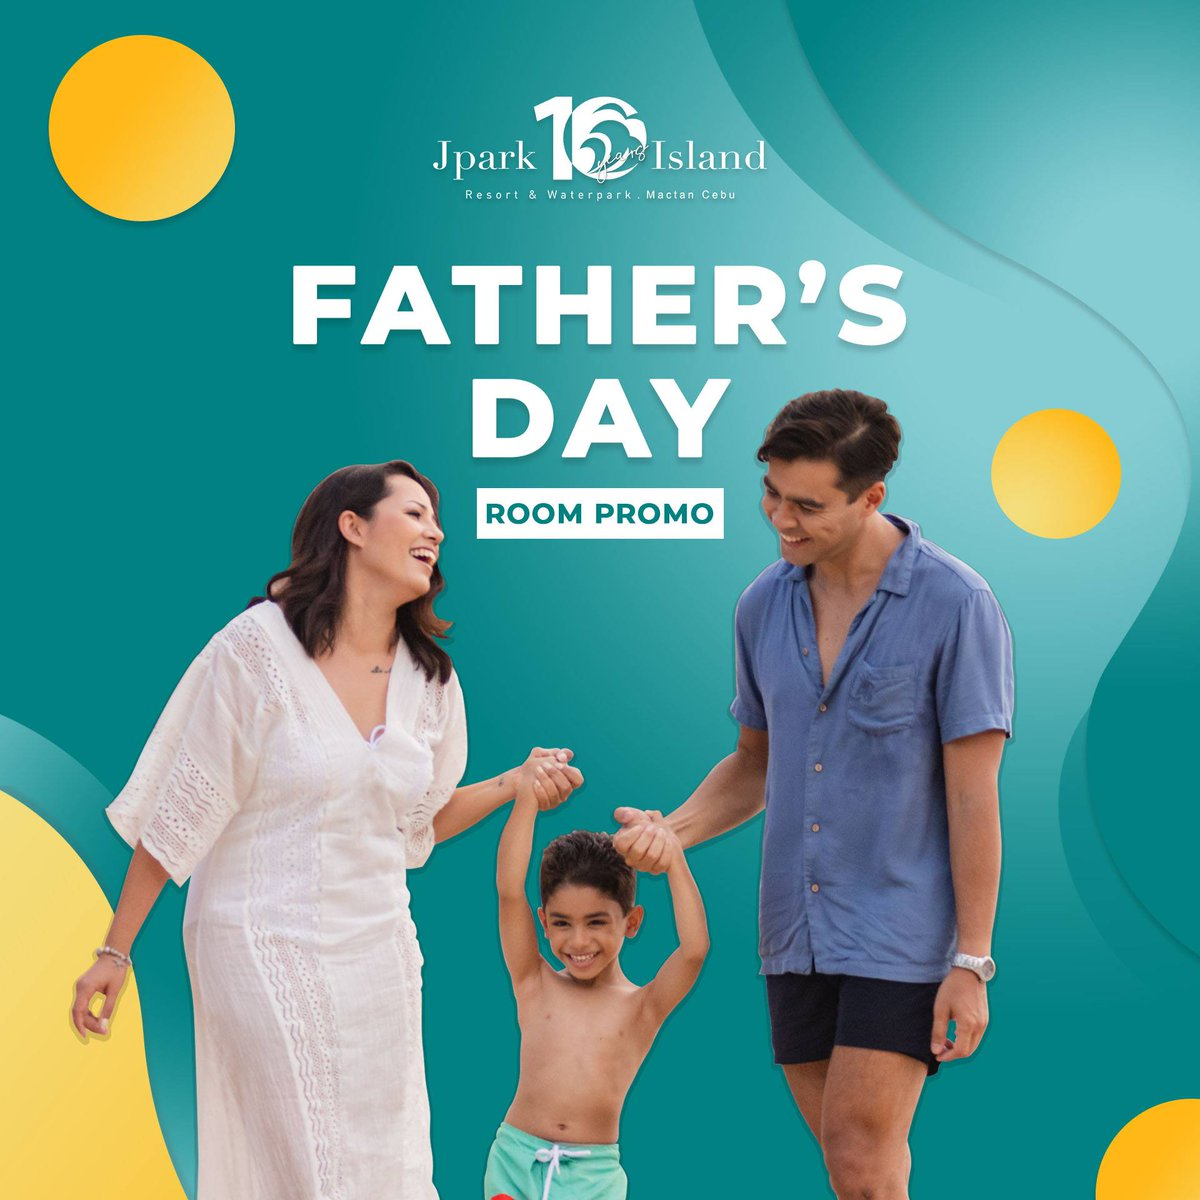 Celebrate your dad because he is certainly the best! Give him the ultimate staycation with our room discounts for Father's Day. Booking period: June 03-30, 2019 Stay period: June 10 - 30, 2019 For more info, click here: https://t.co/i0HHNHyeGS #MyJparkStory #WaterYouWaitingFor https://t.co/qYZfcQYUX8